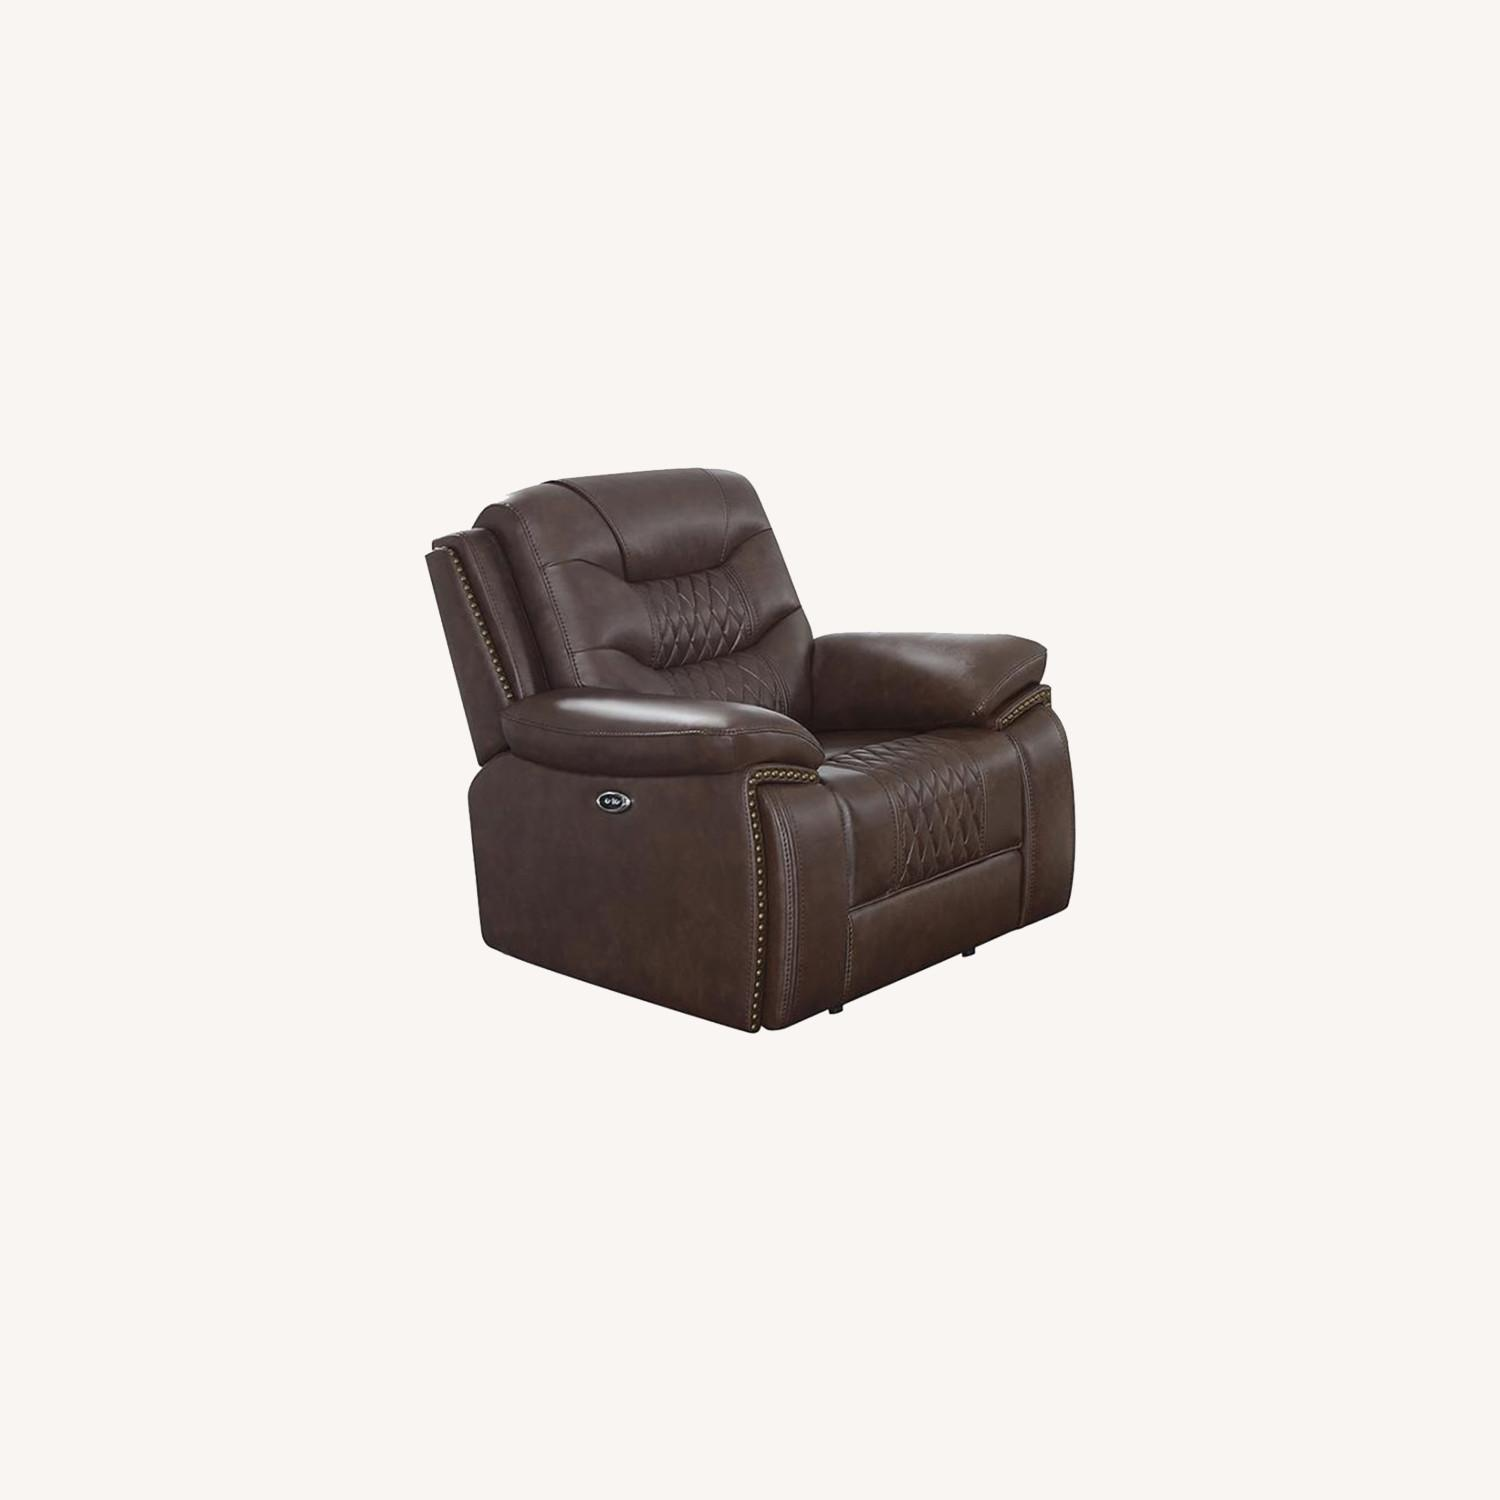 Power Recliner Upholstered In Brown Leatherette - image-5